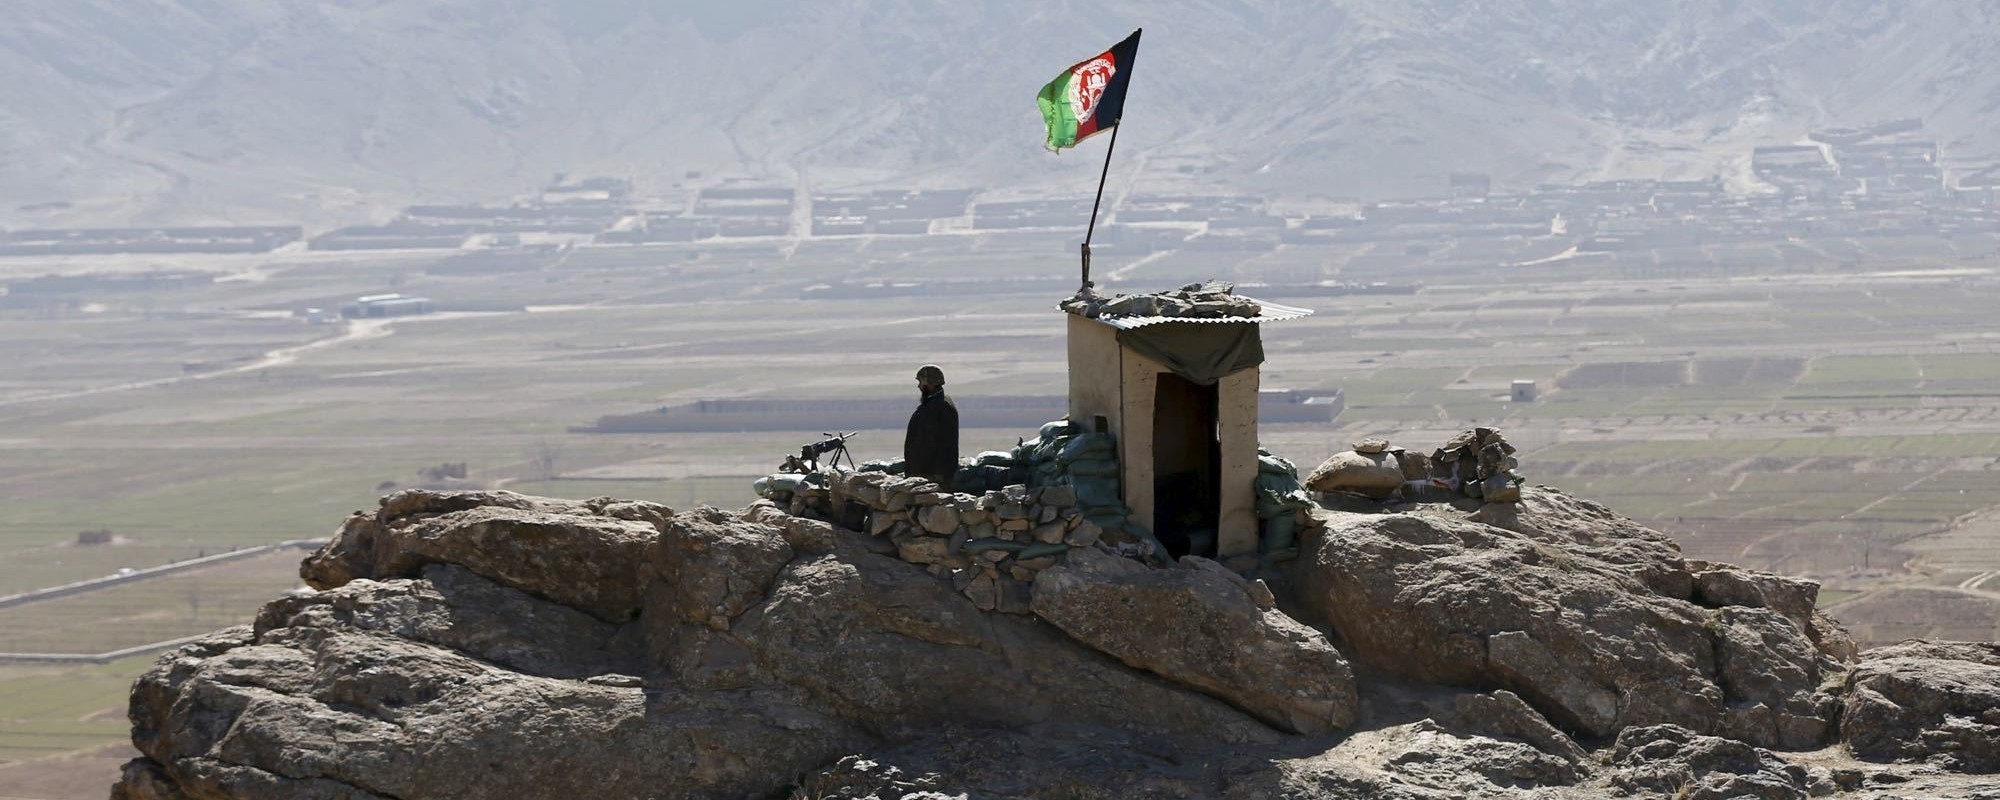 The US is reconsidering its plan to pull troops out of Afghanistan